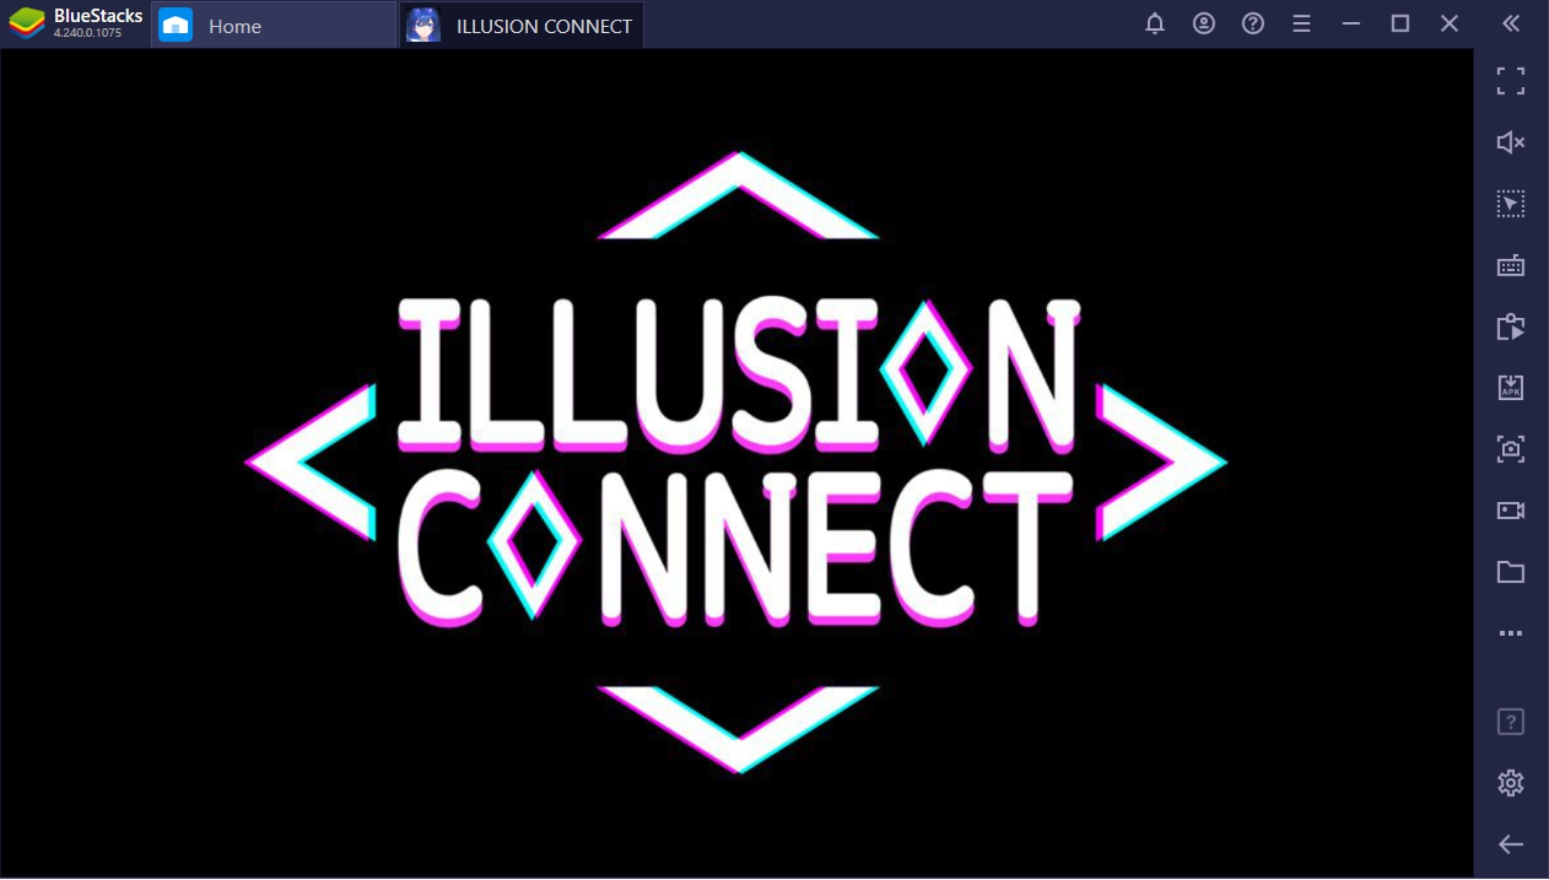 How to Play Illusion Connect on PC with BlueStacks